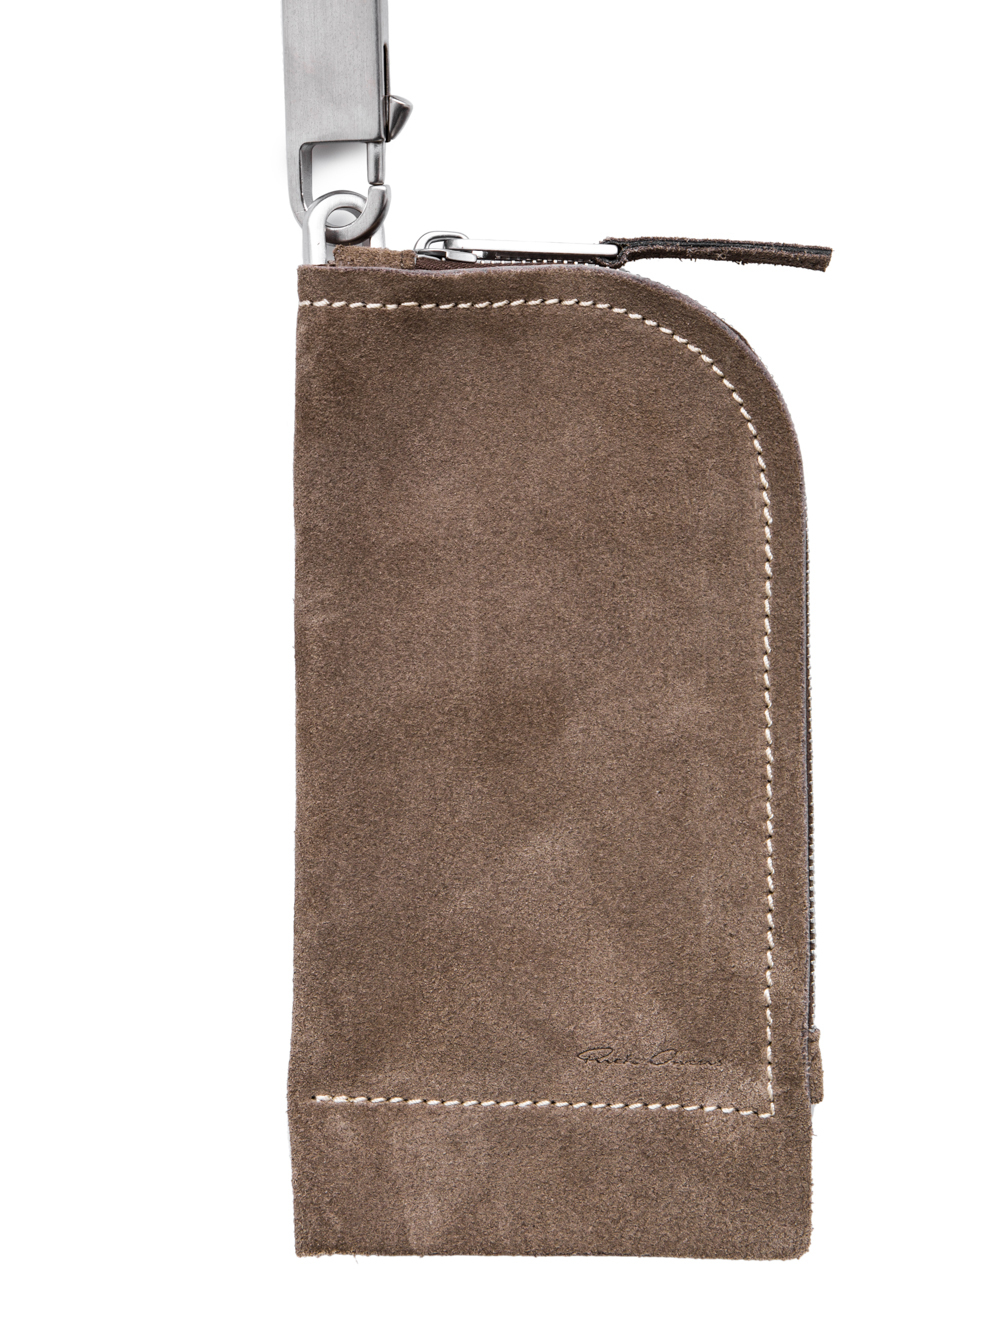 RICK OWENS OFF-THE-RUNWAY NECKWALLET IN DUST GREY SUEDE CALF LEATHER IS RECTANGULAR